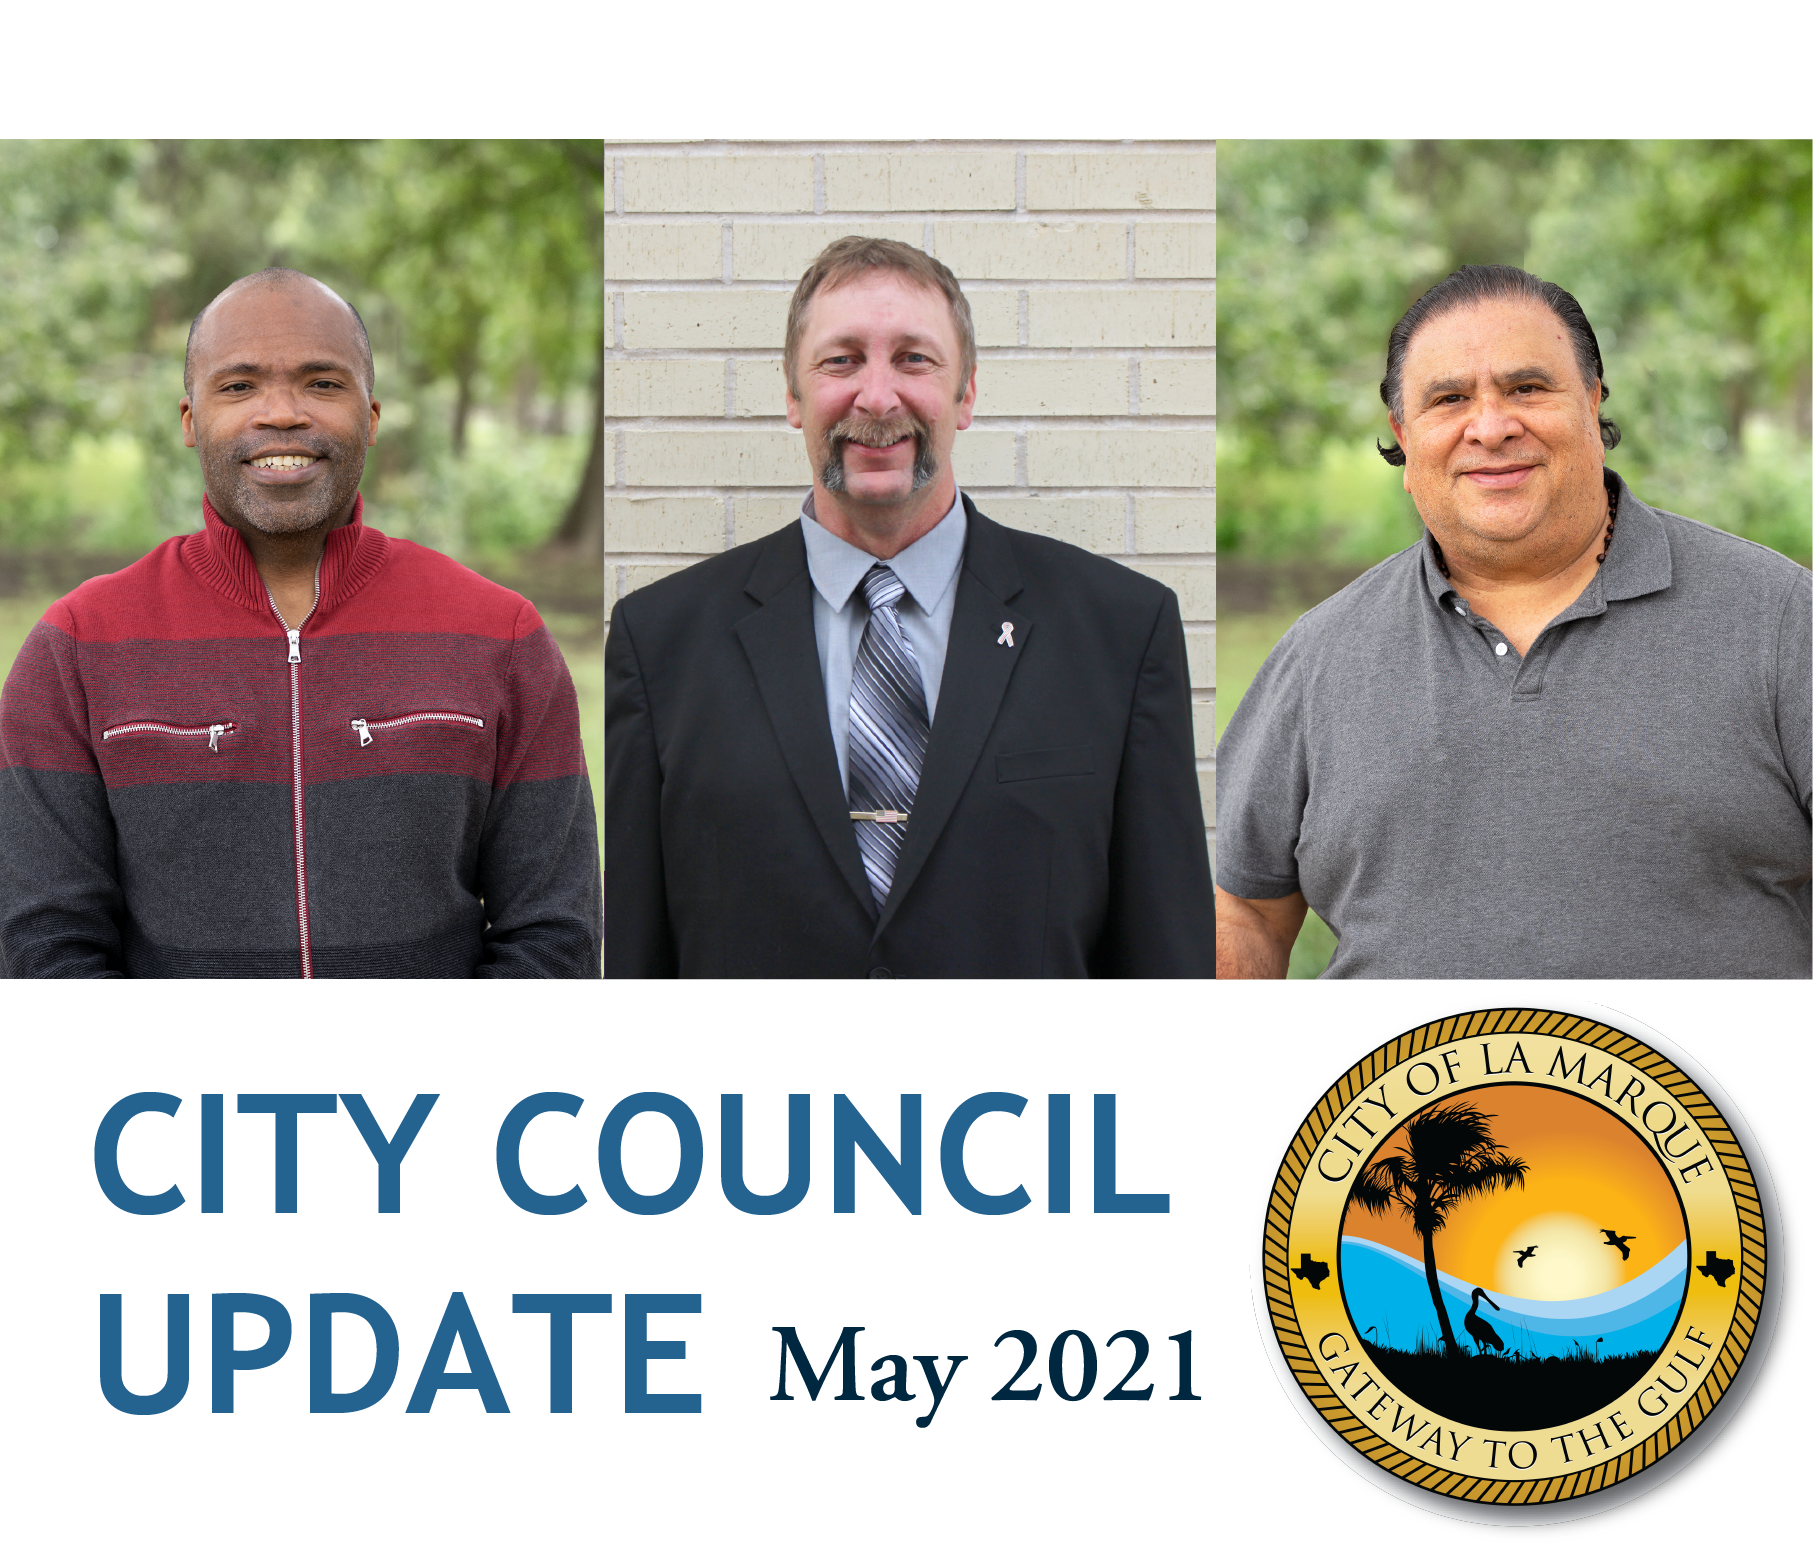 City Council Update 2021